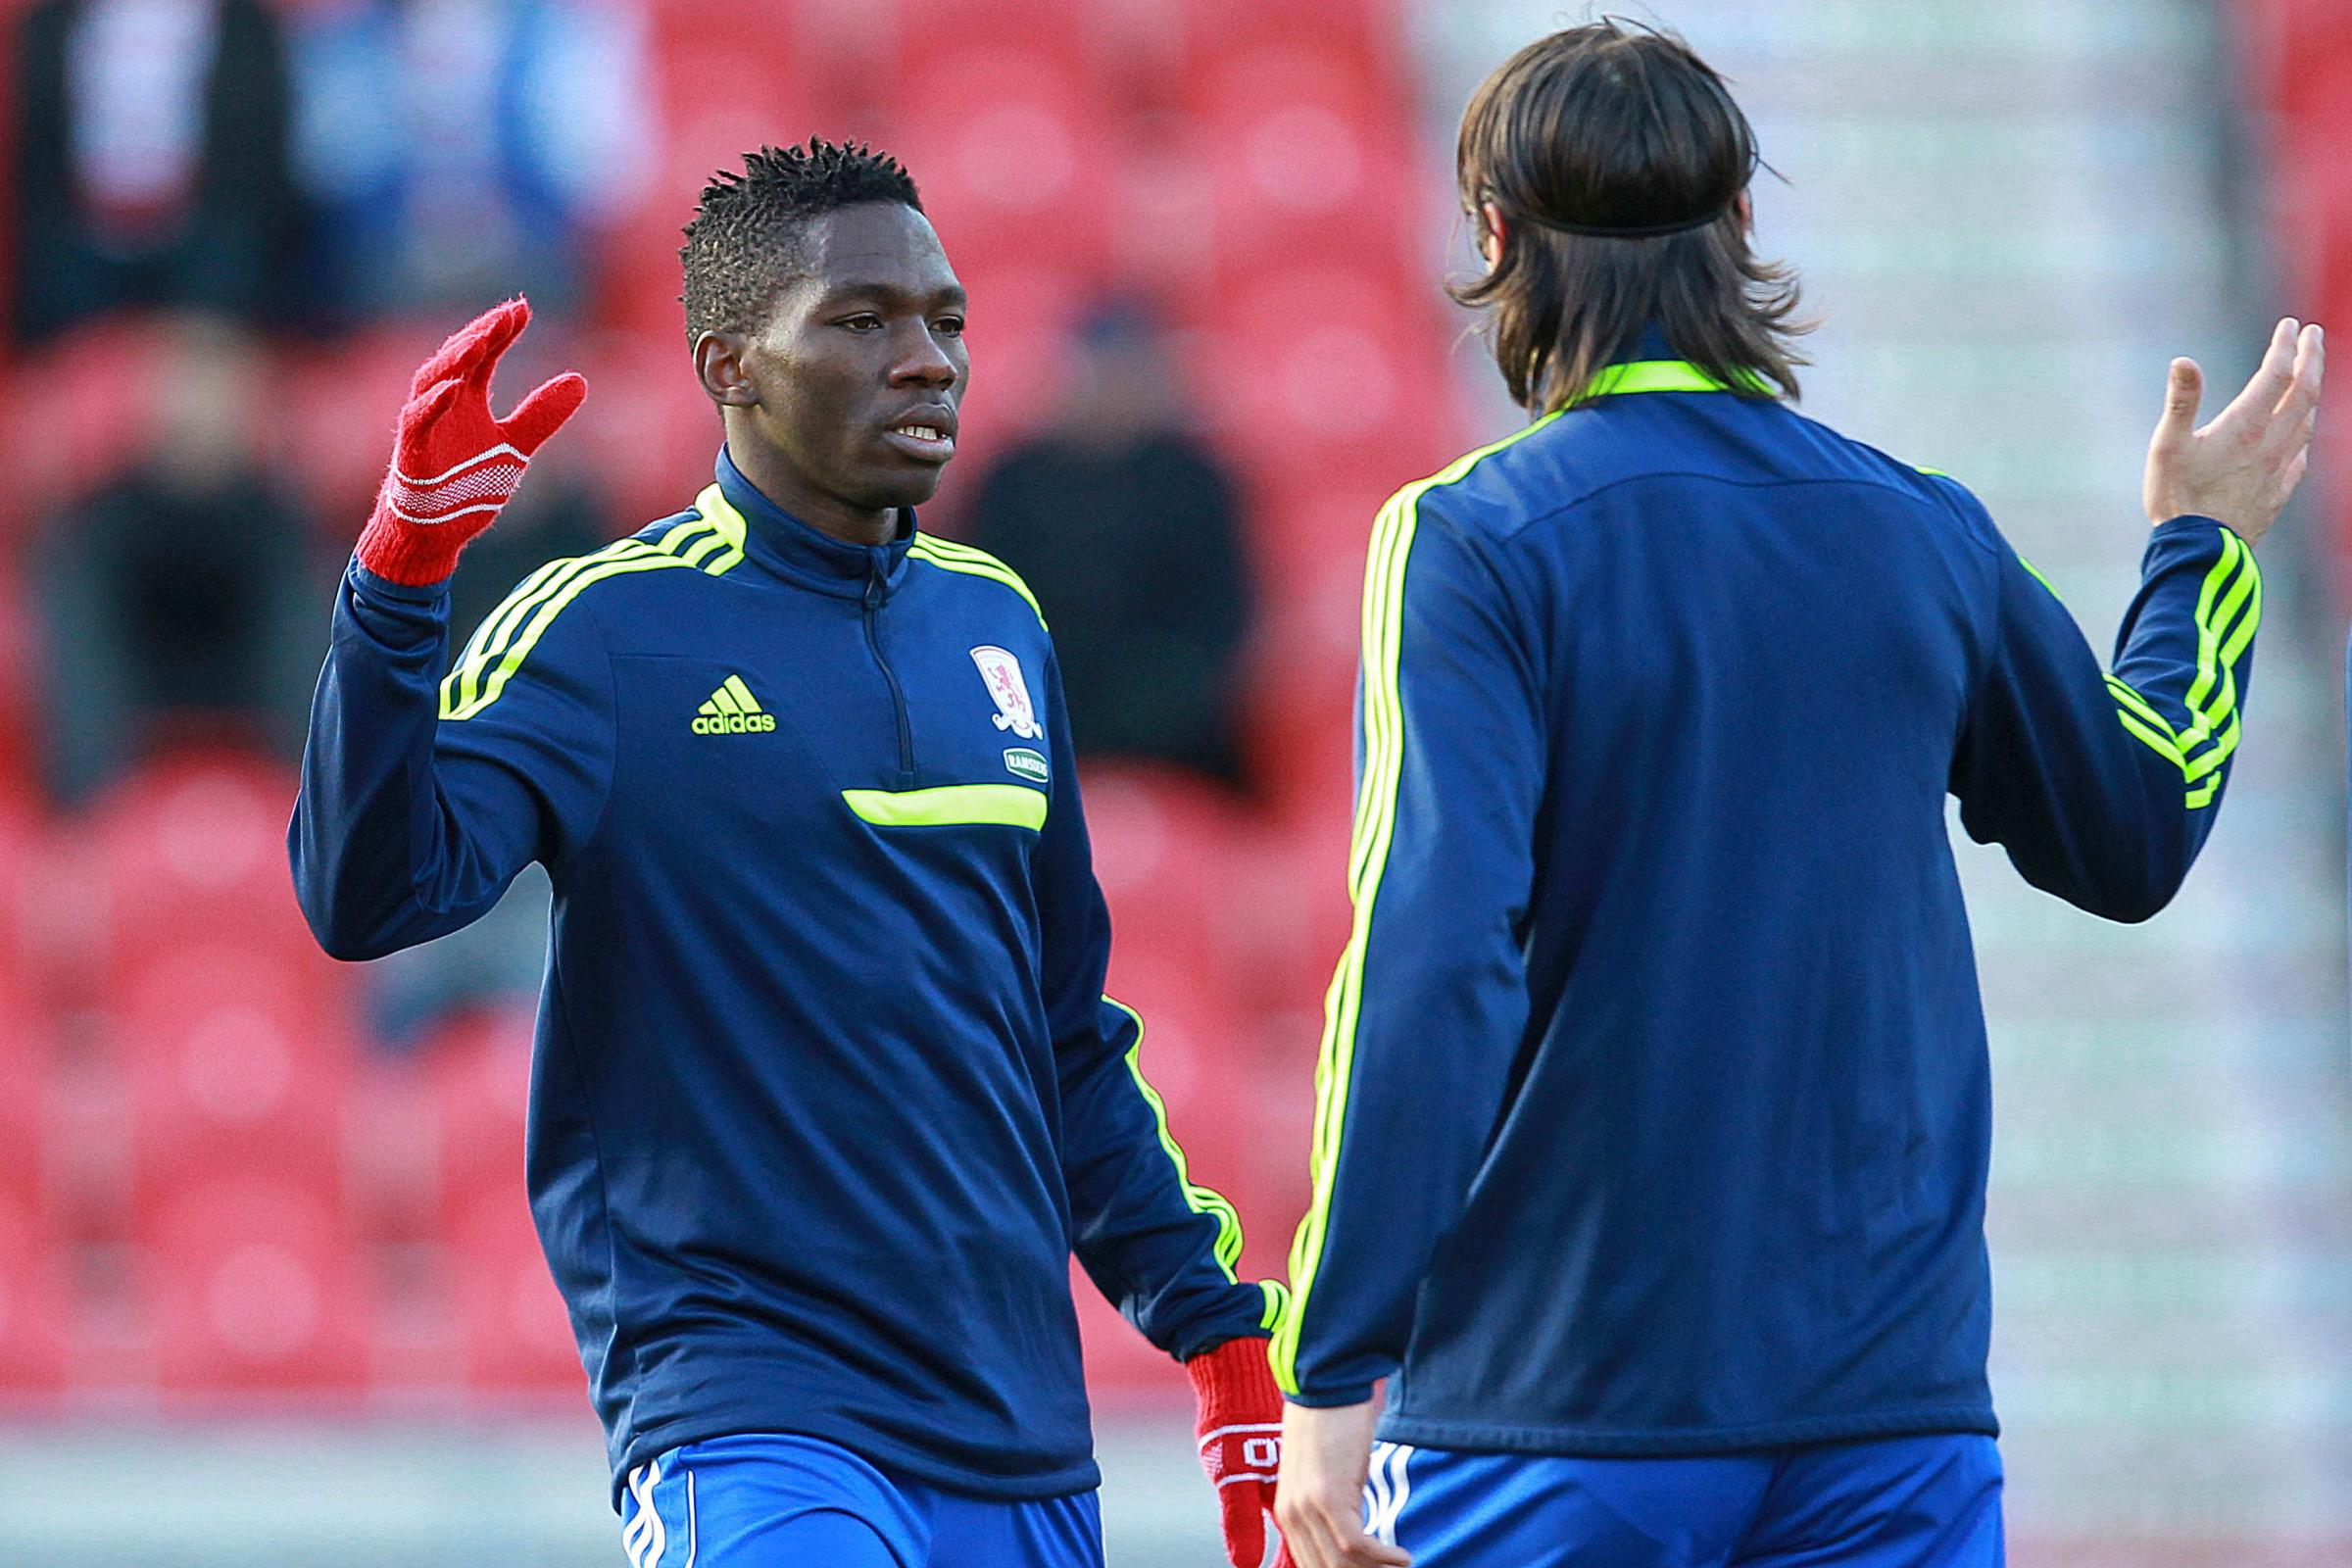 CENTRAL STRENGTH: Aitor Karanka feels Kenneth Omeruo will establish himself as a central defender as his career develops